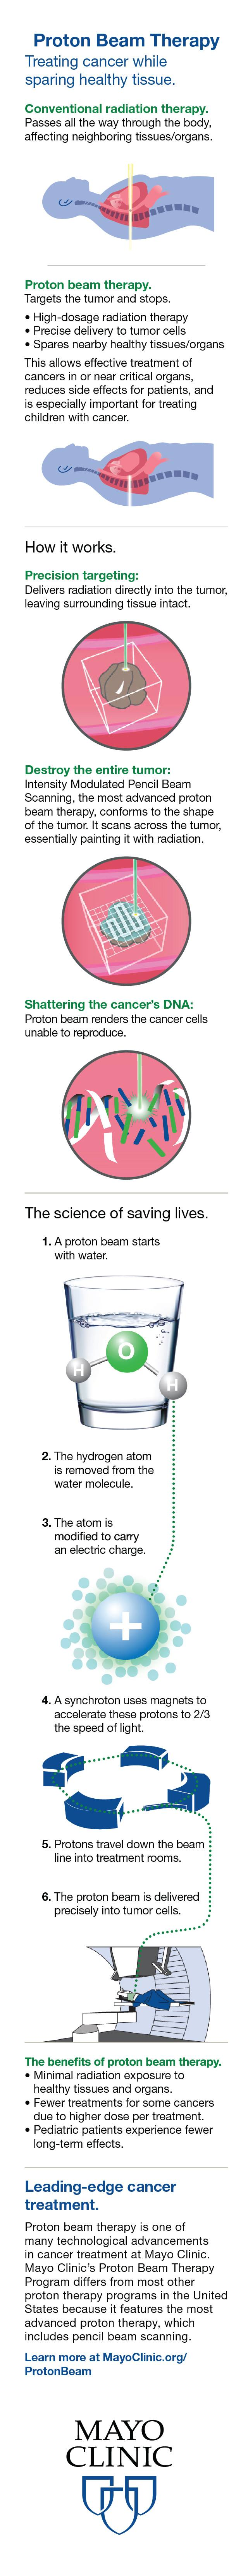 Infographic for treating cancer with proton beam therapy